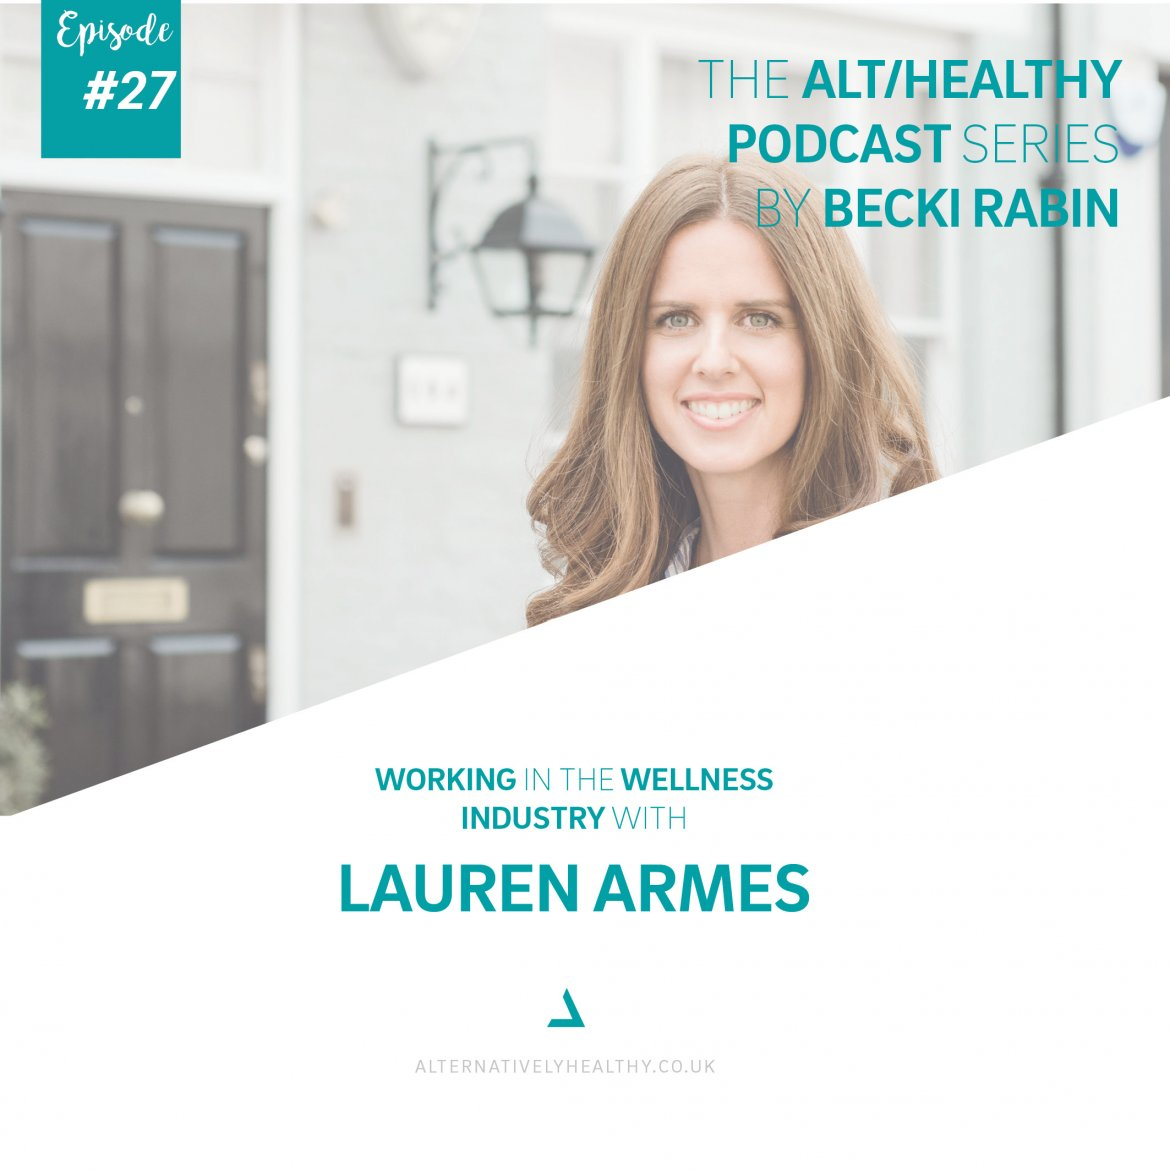 EP 27 – Becki Rabin talks to Lauren about building a business or career in the wellness industry.